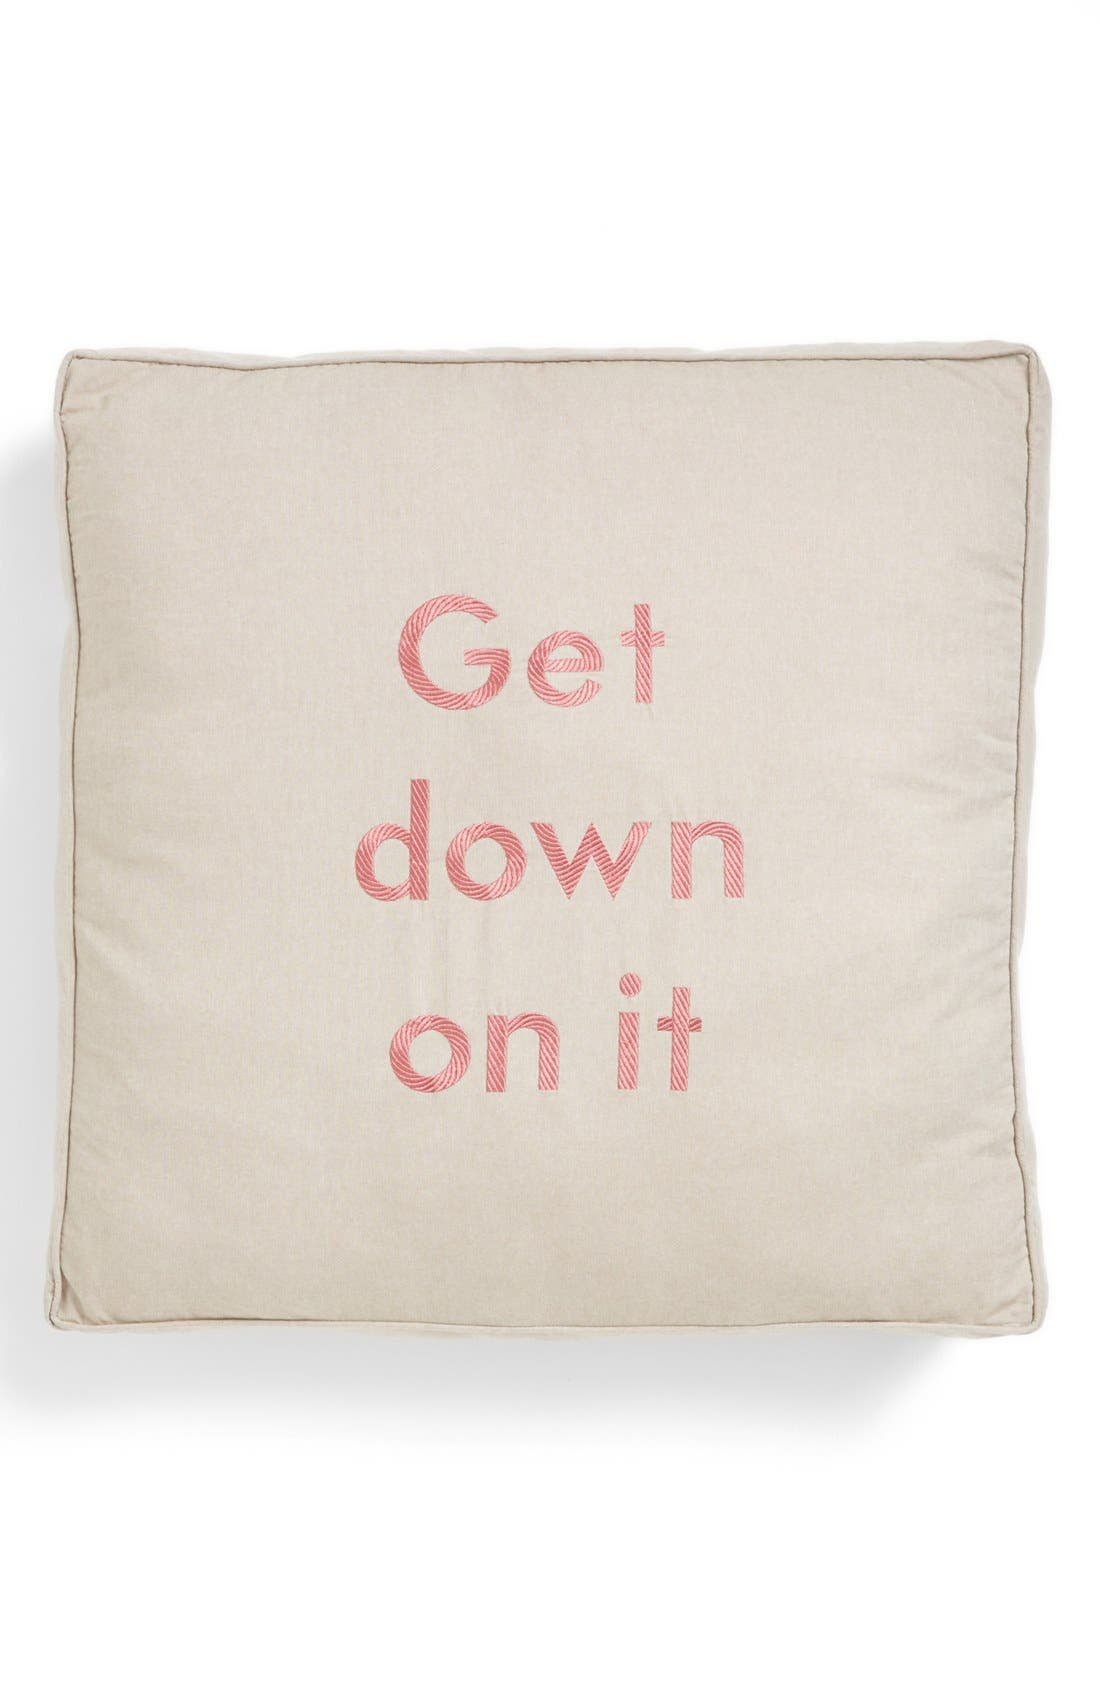 Alternate Image 1 Selected - Levtex 'Get Down on It' Floor Pillow